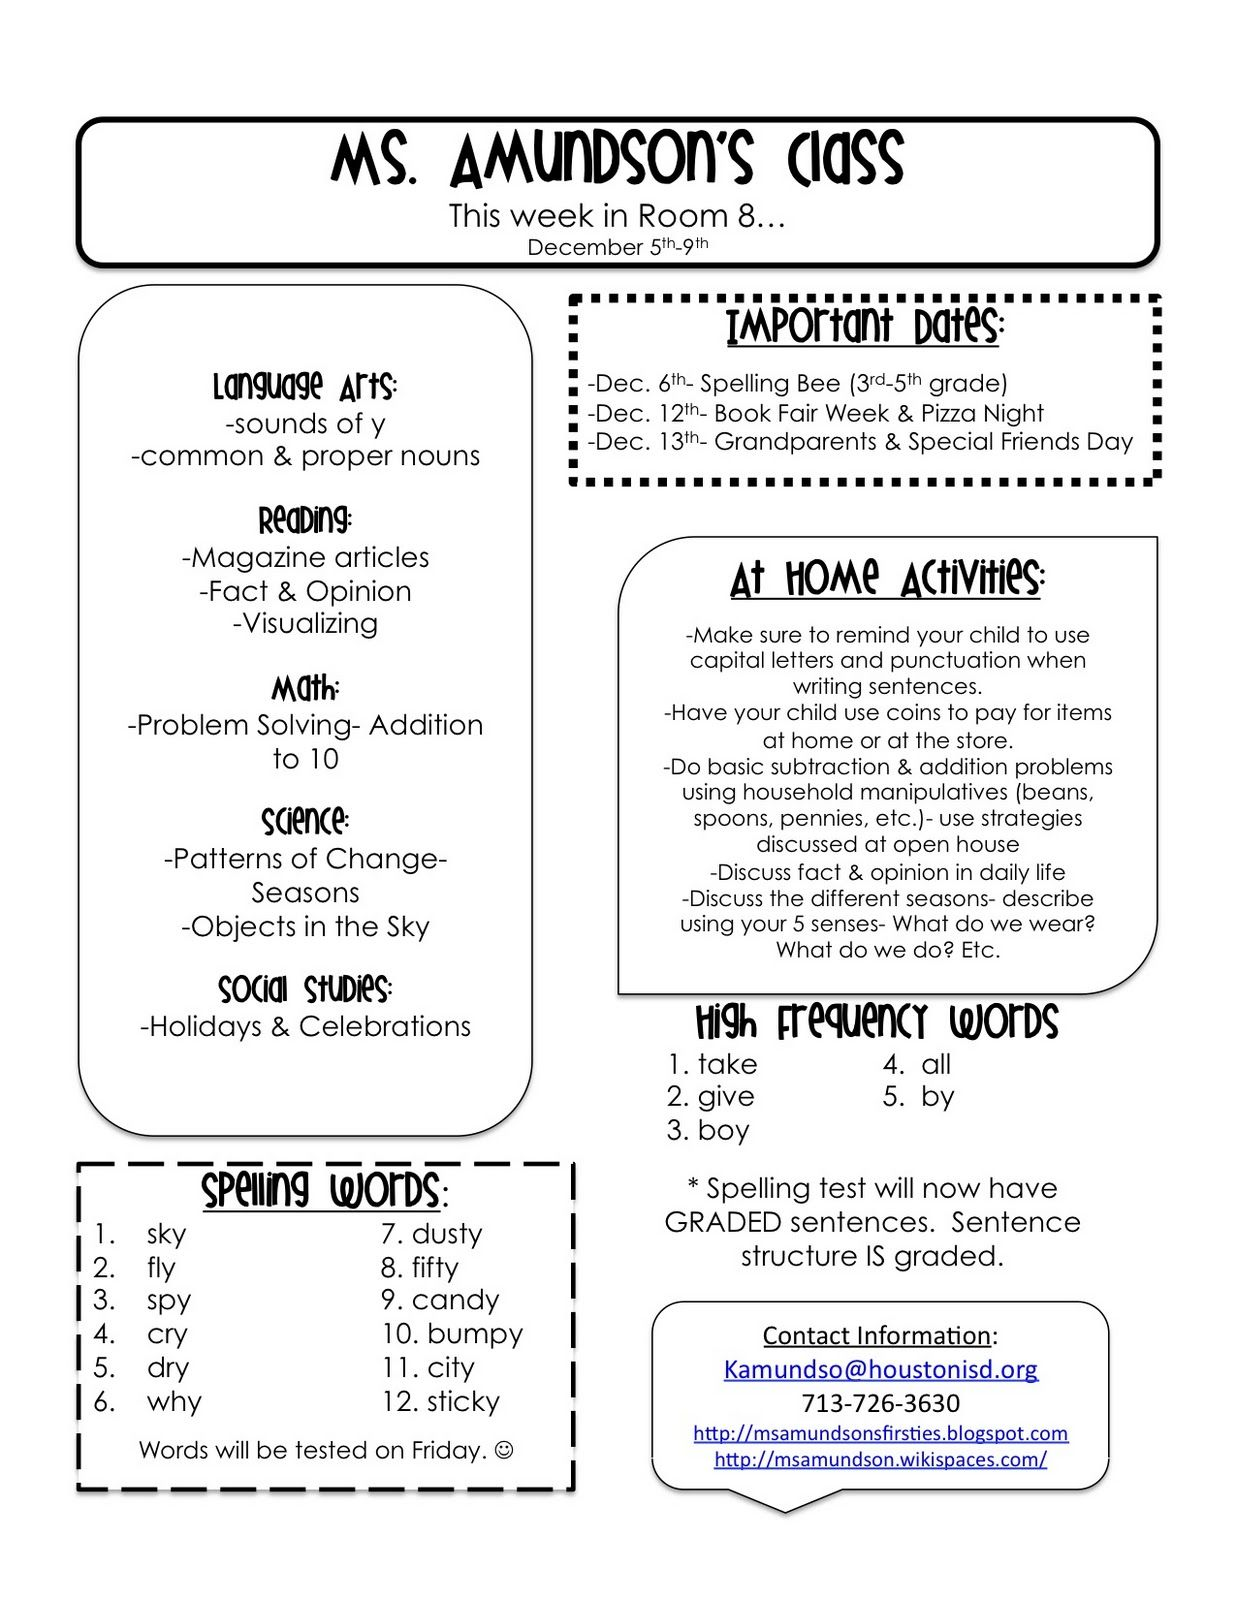 Weekly Newsletter Templates For Teachers First Grade Pinterest - Daily newsletter template